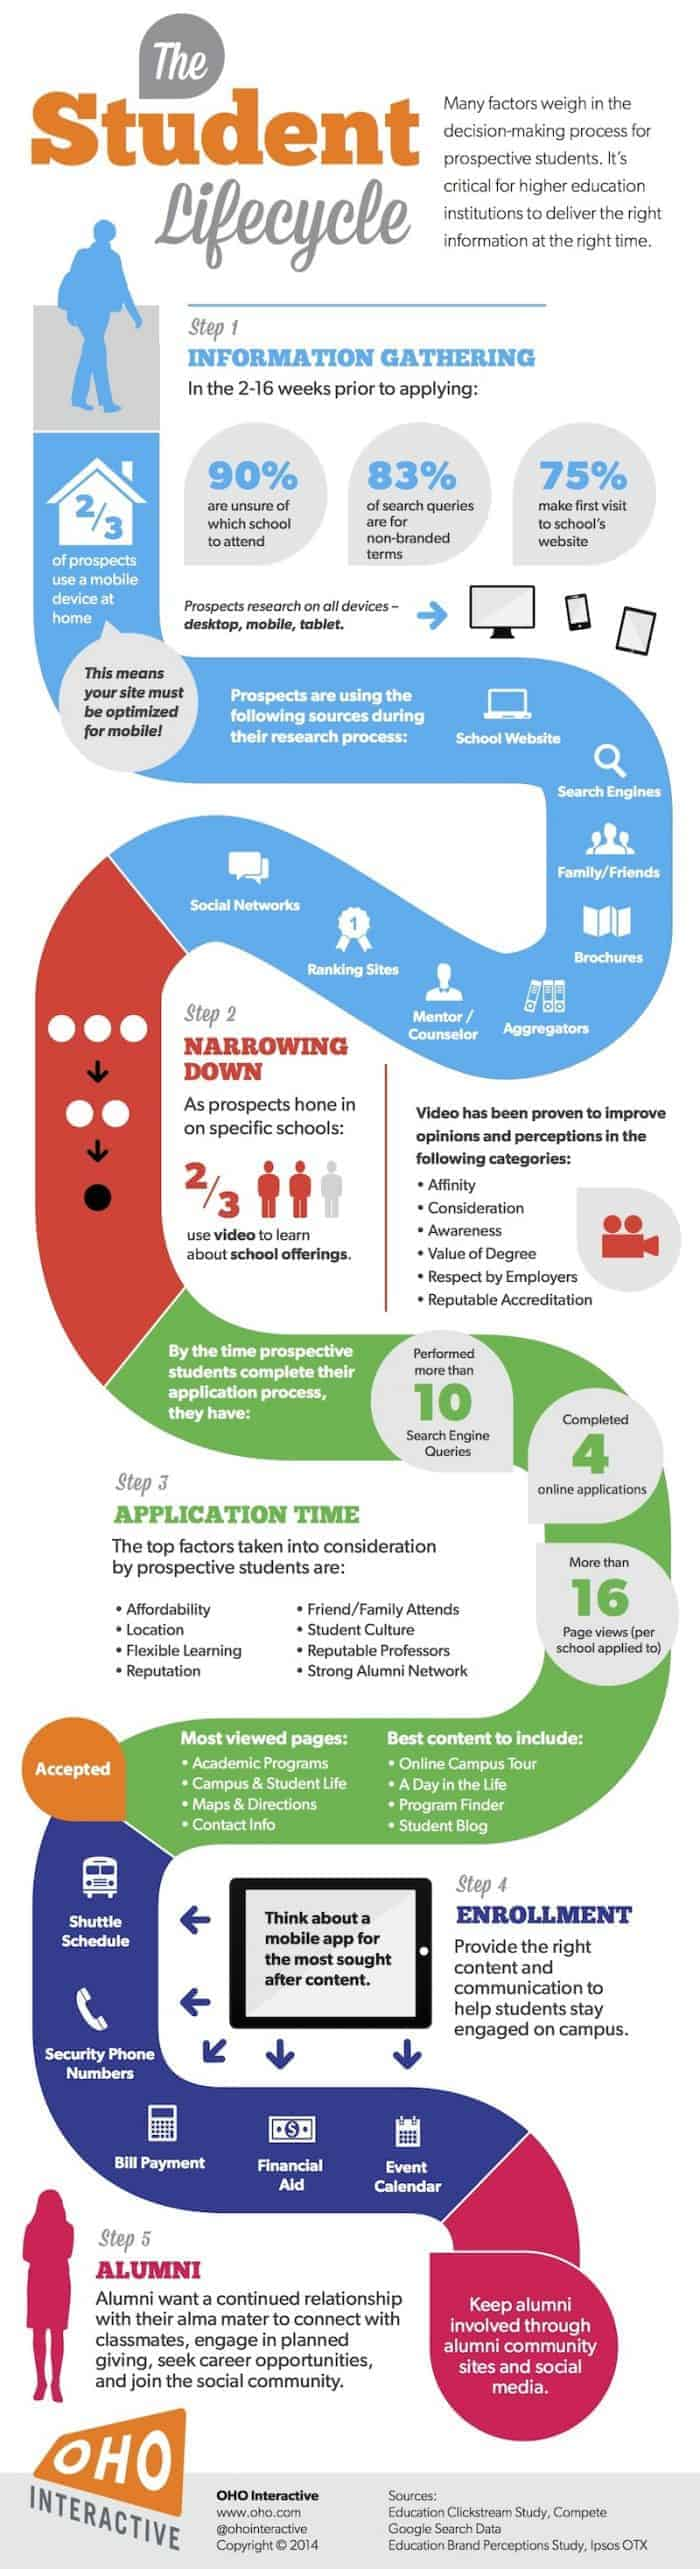 Student Lifecycle Infographic